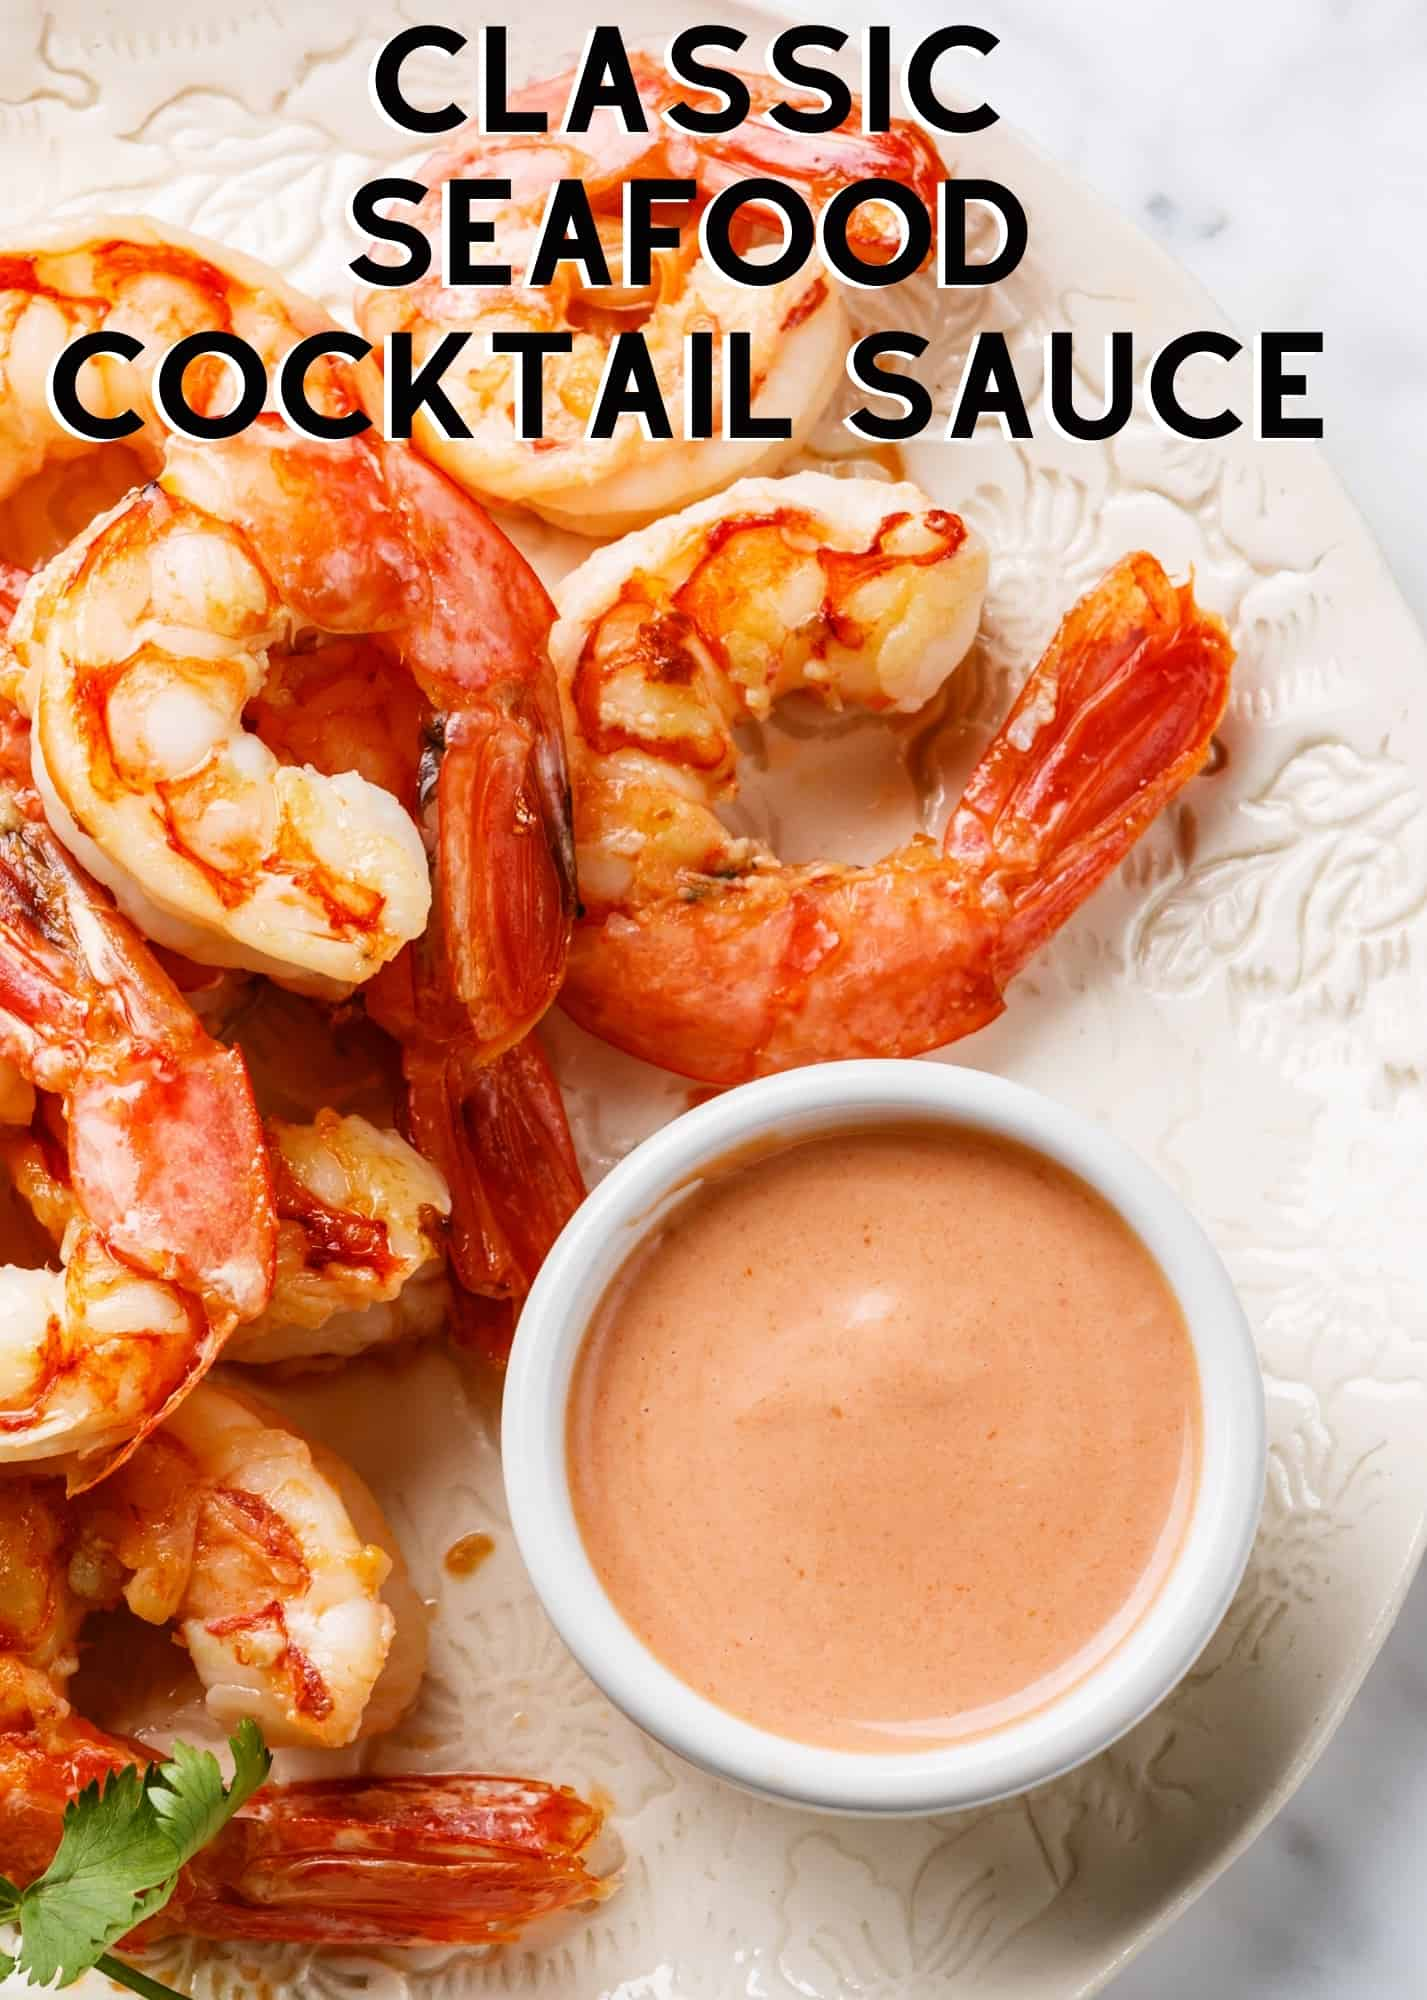 Classic Seafood Cocktail Sauce. A delicious seafood cocktail sauce, mild yet tangy, the perfect accompaniment to prawns, lobster, and ideal for serving as a dipping sauce or to add to a prawn cocktail.